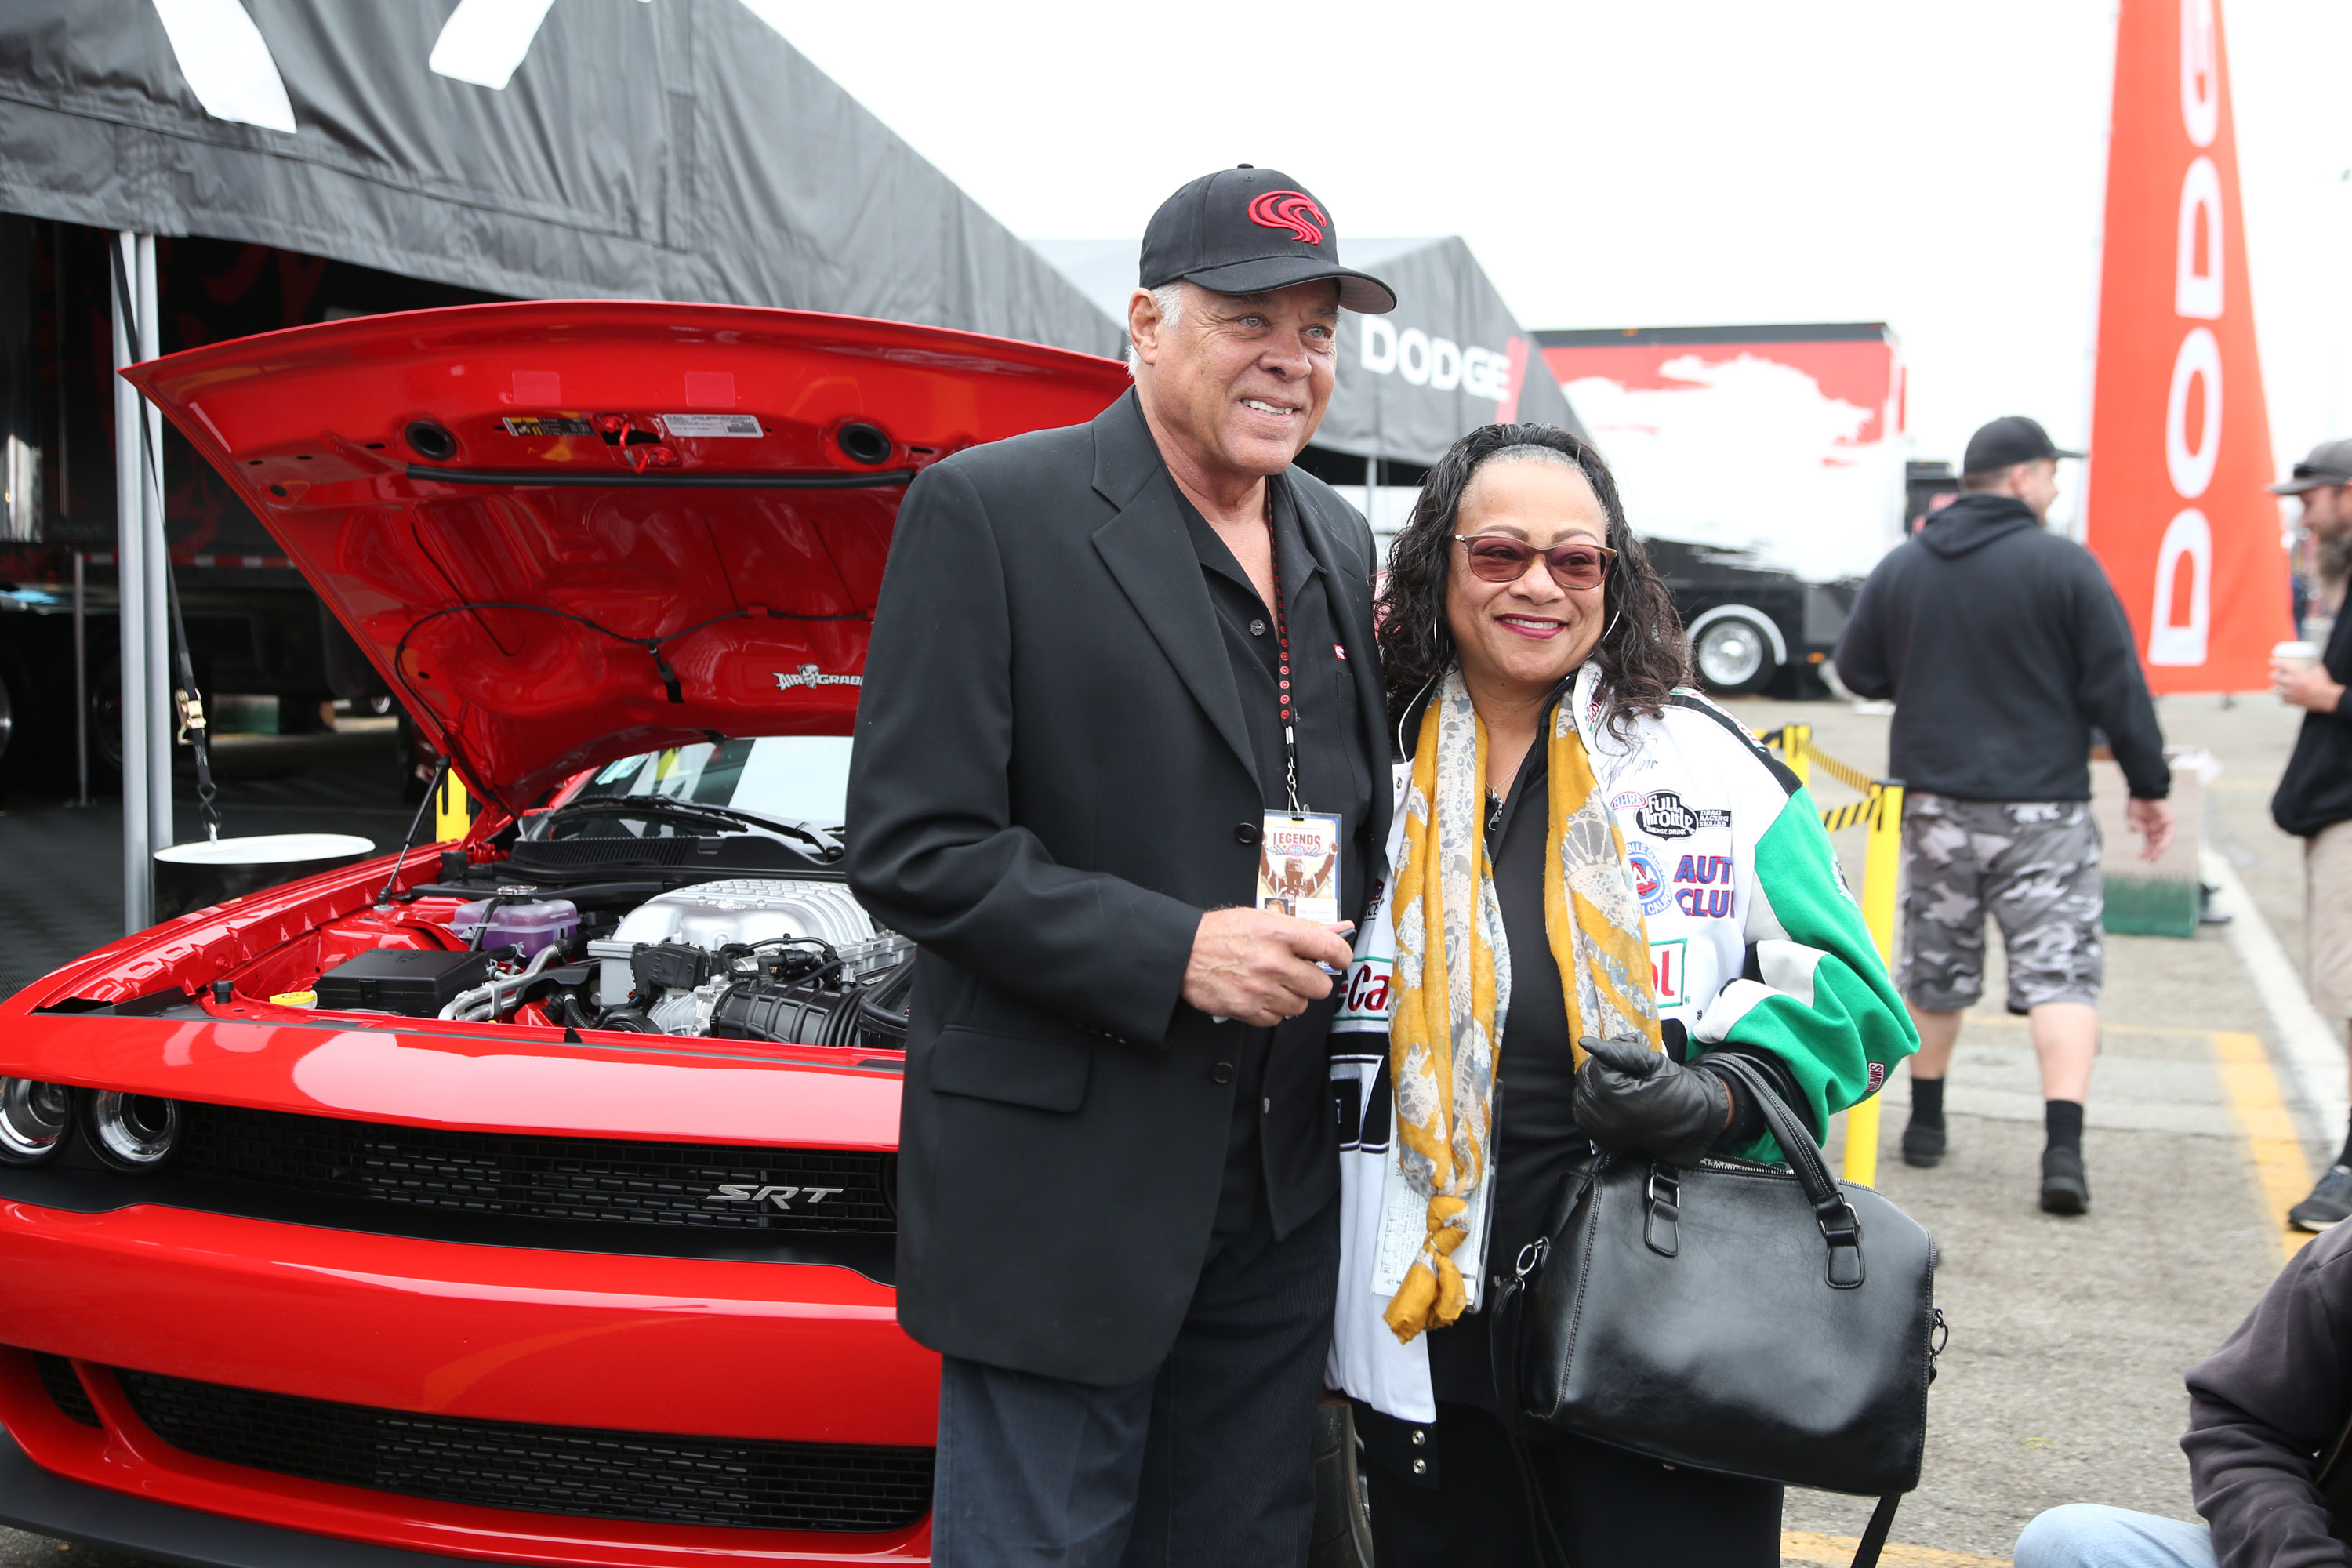 The day before the races, Prudhomme took ownership of a 2018 Dodge Demon and, never one to miss a marketing opportunity, offered to park it in the Dodge display for the event.